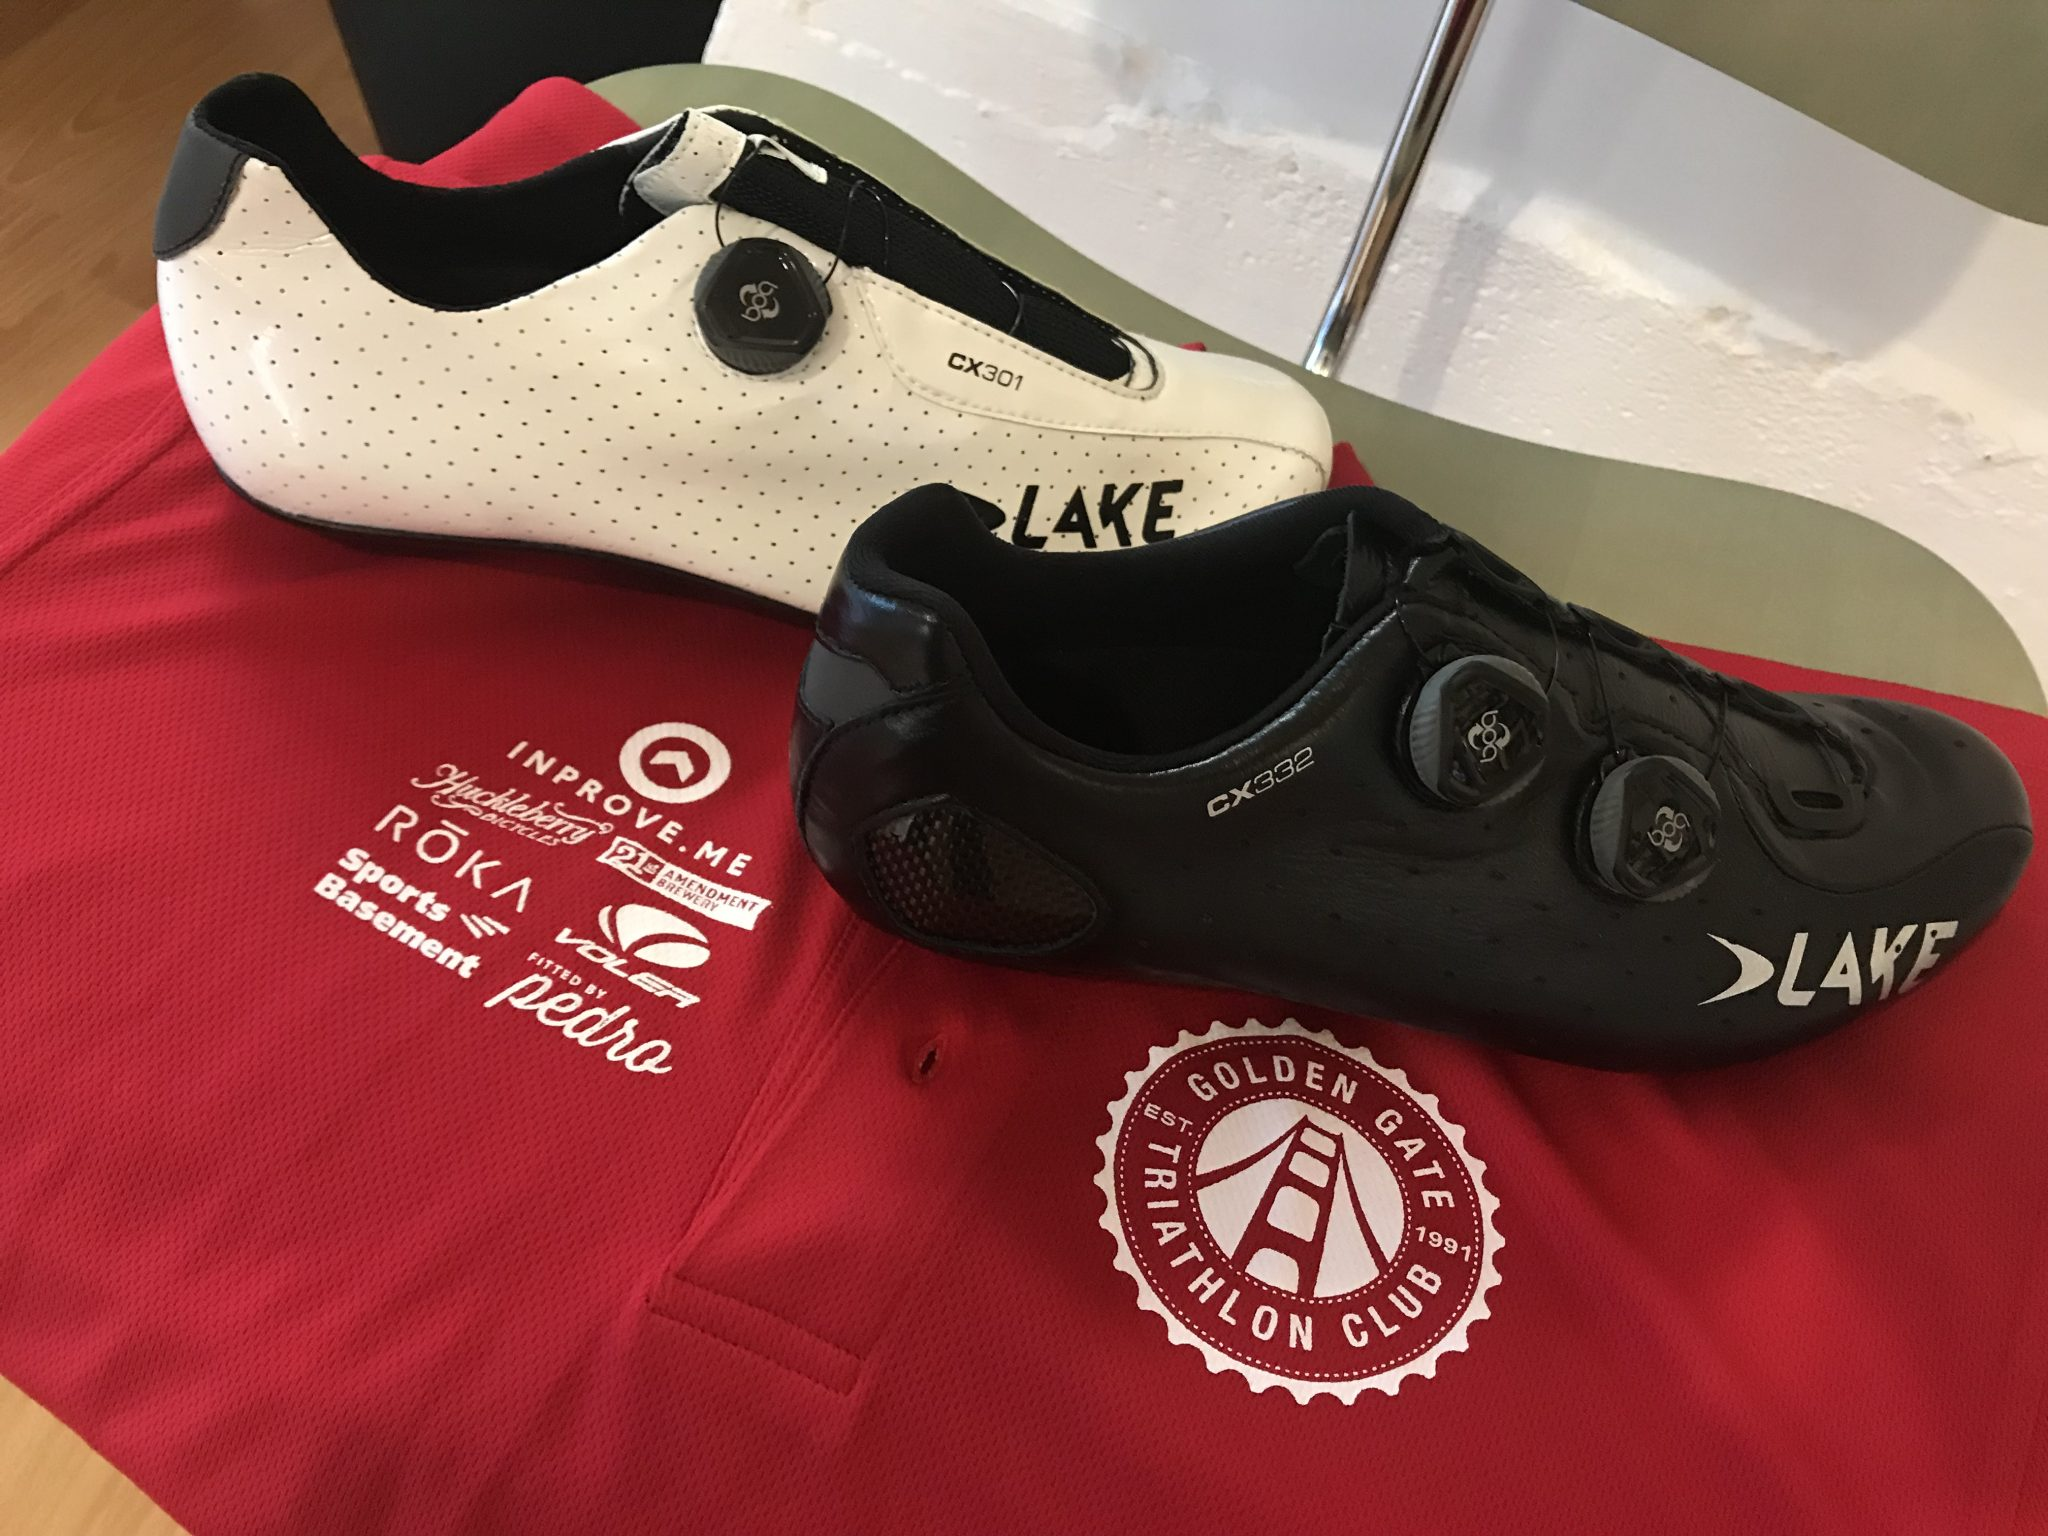 73e9787c7 Lake Cycling Shoes - Fitted By Pedro